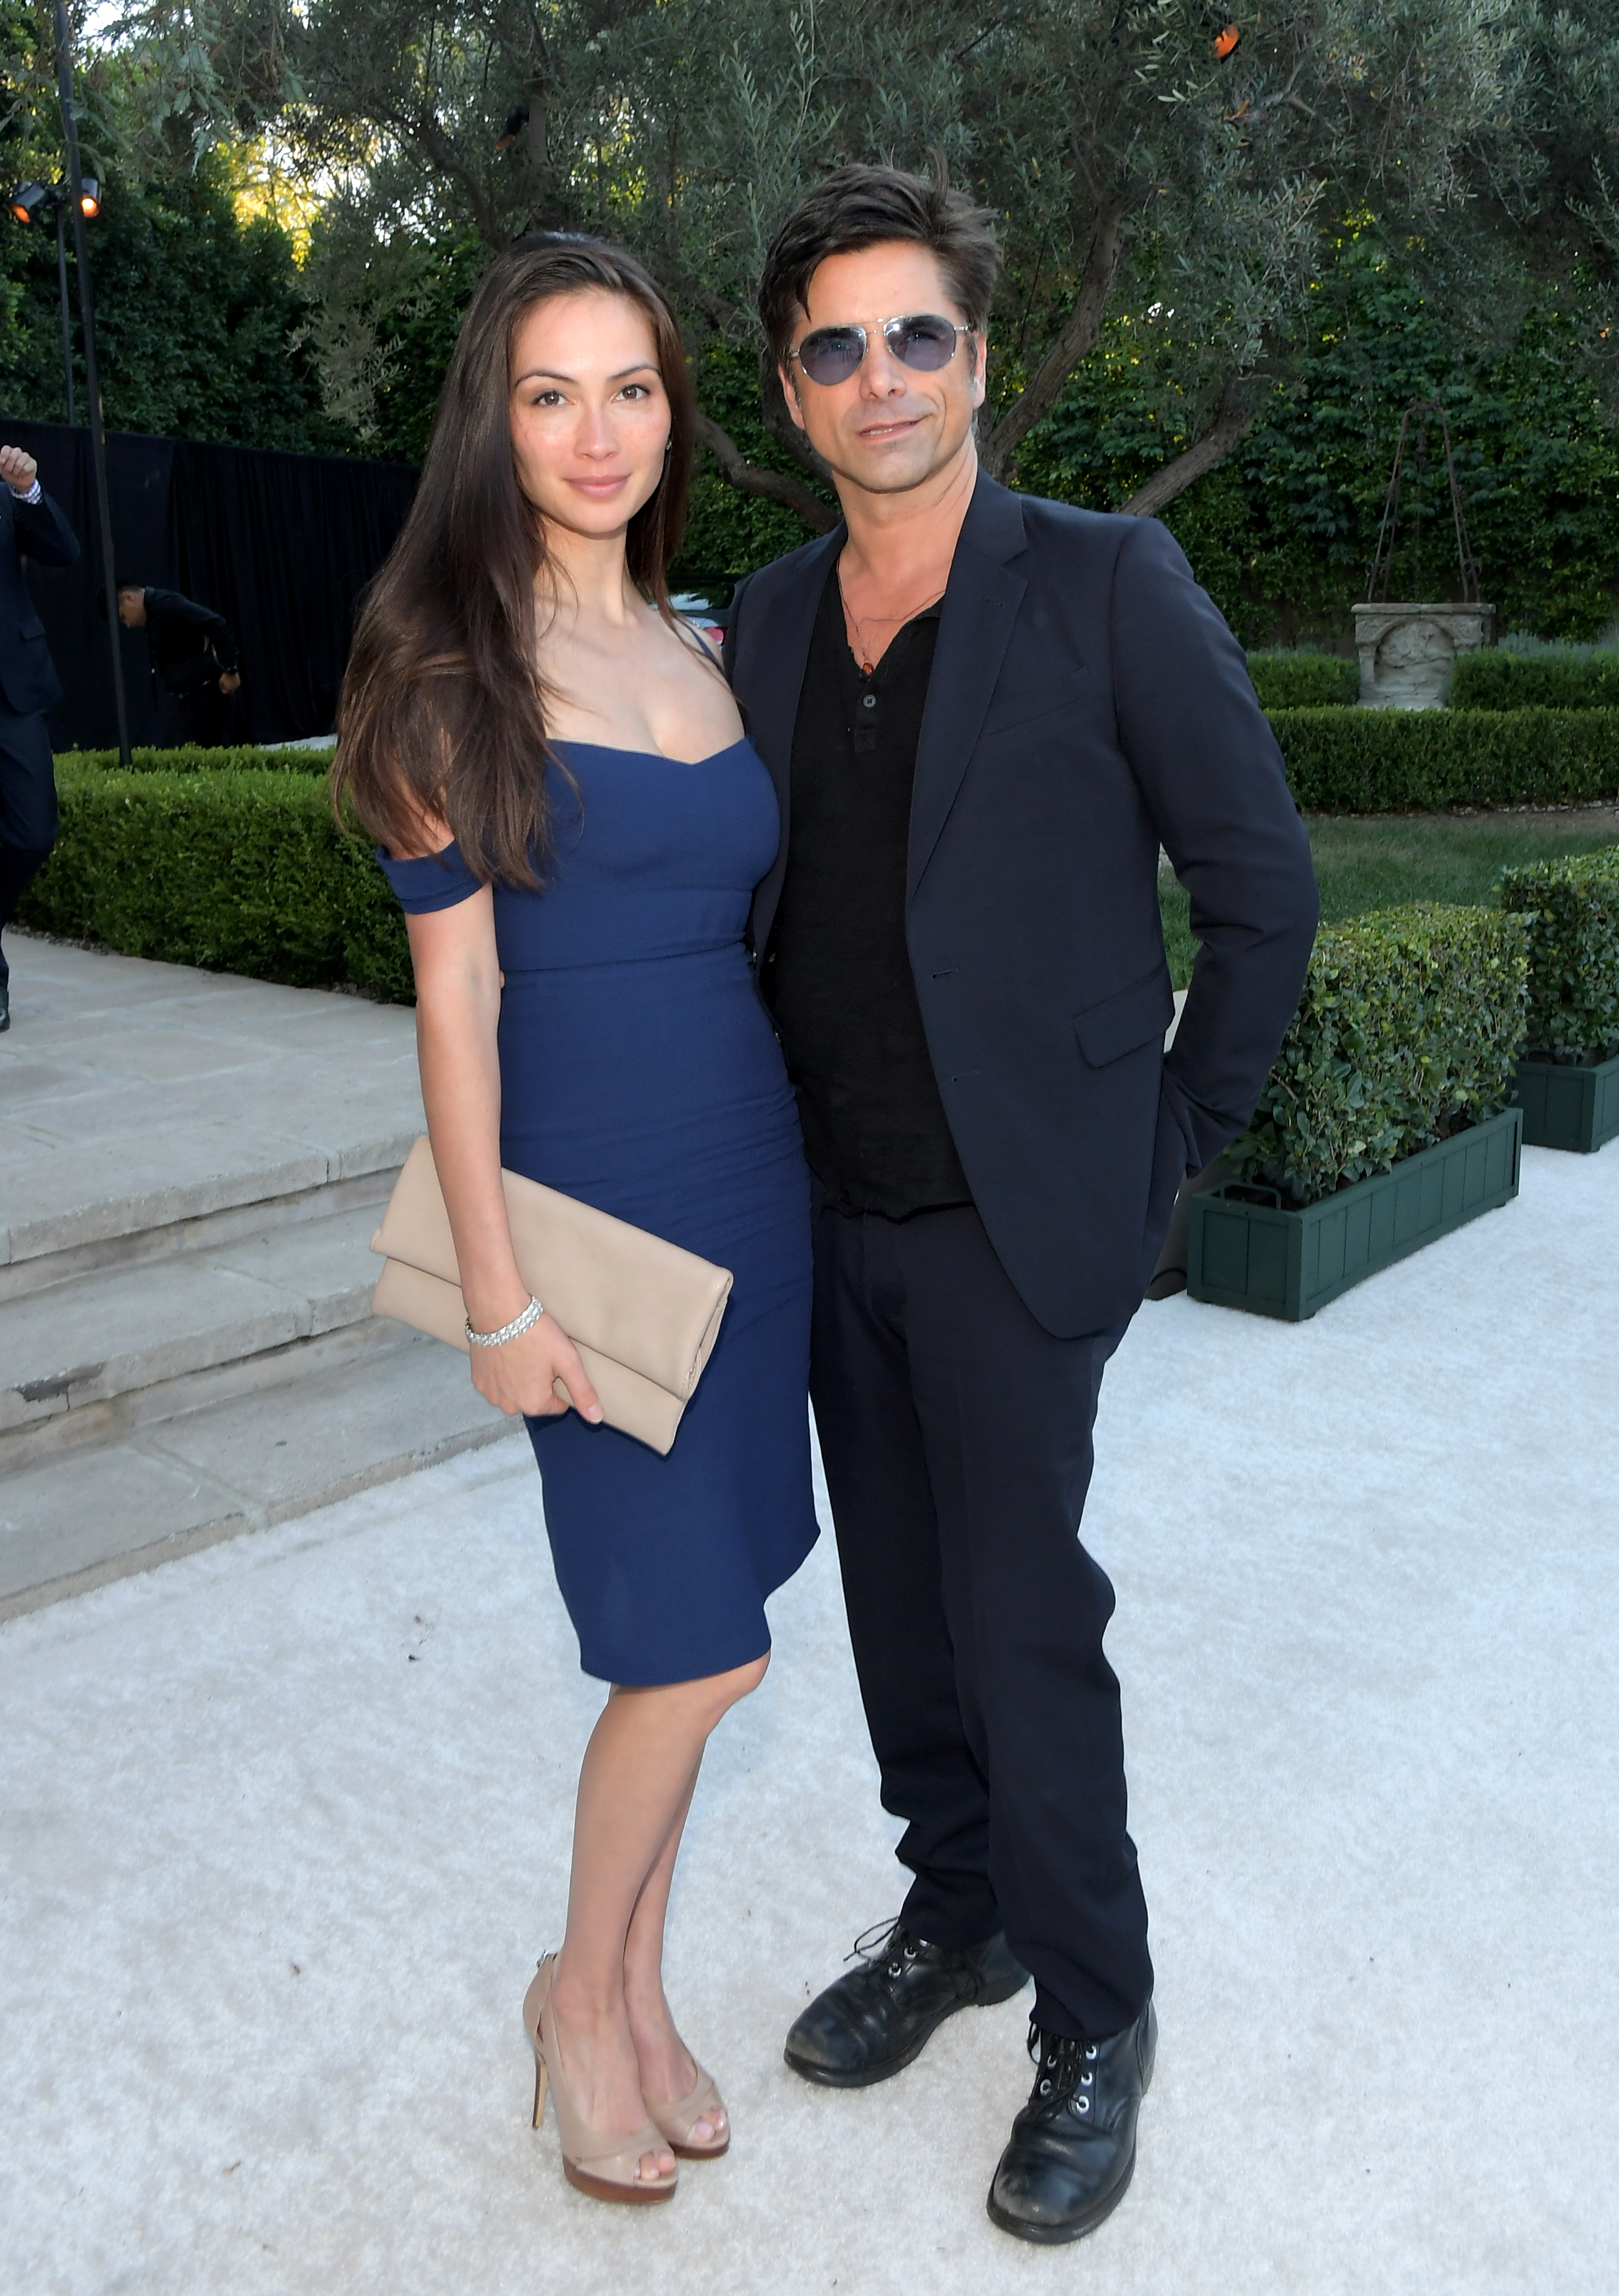 Caitlin McHugh and John Stamos attend Ted Sarandos' 2018 Annual Netflix Emmy Nominee Toast on September 15, 2018 in Los Angeles, California.